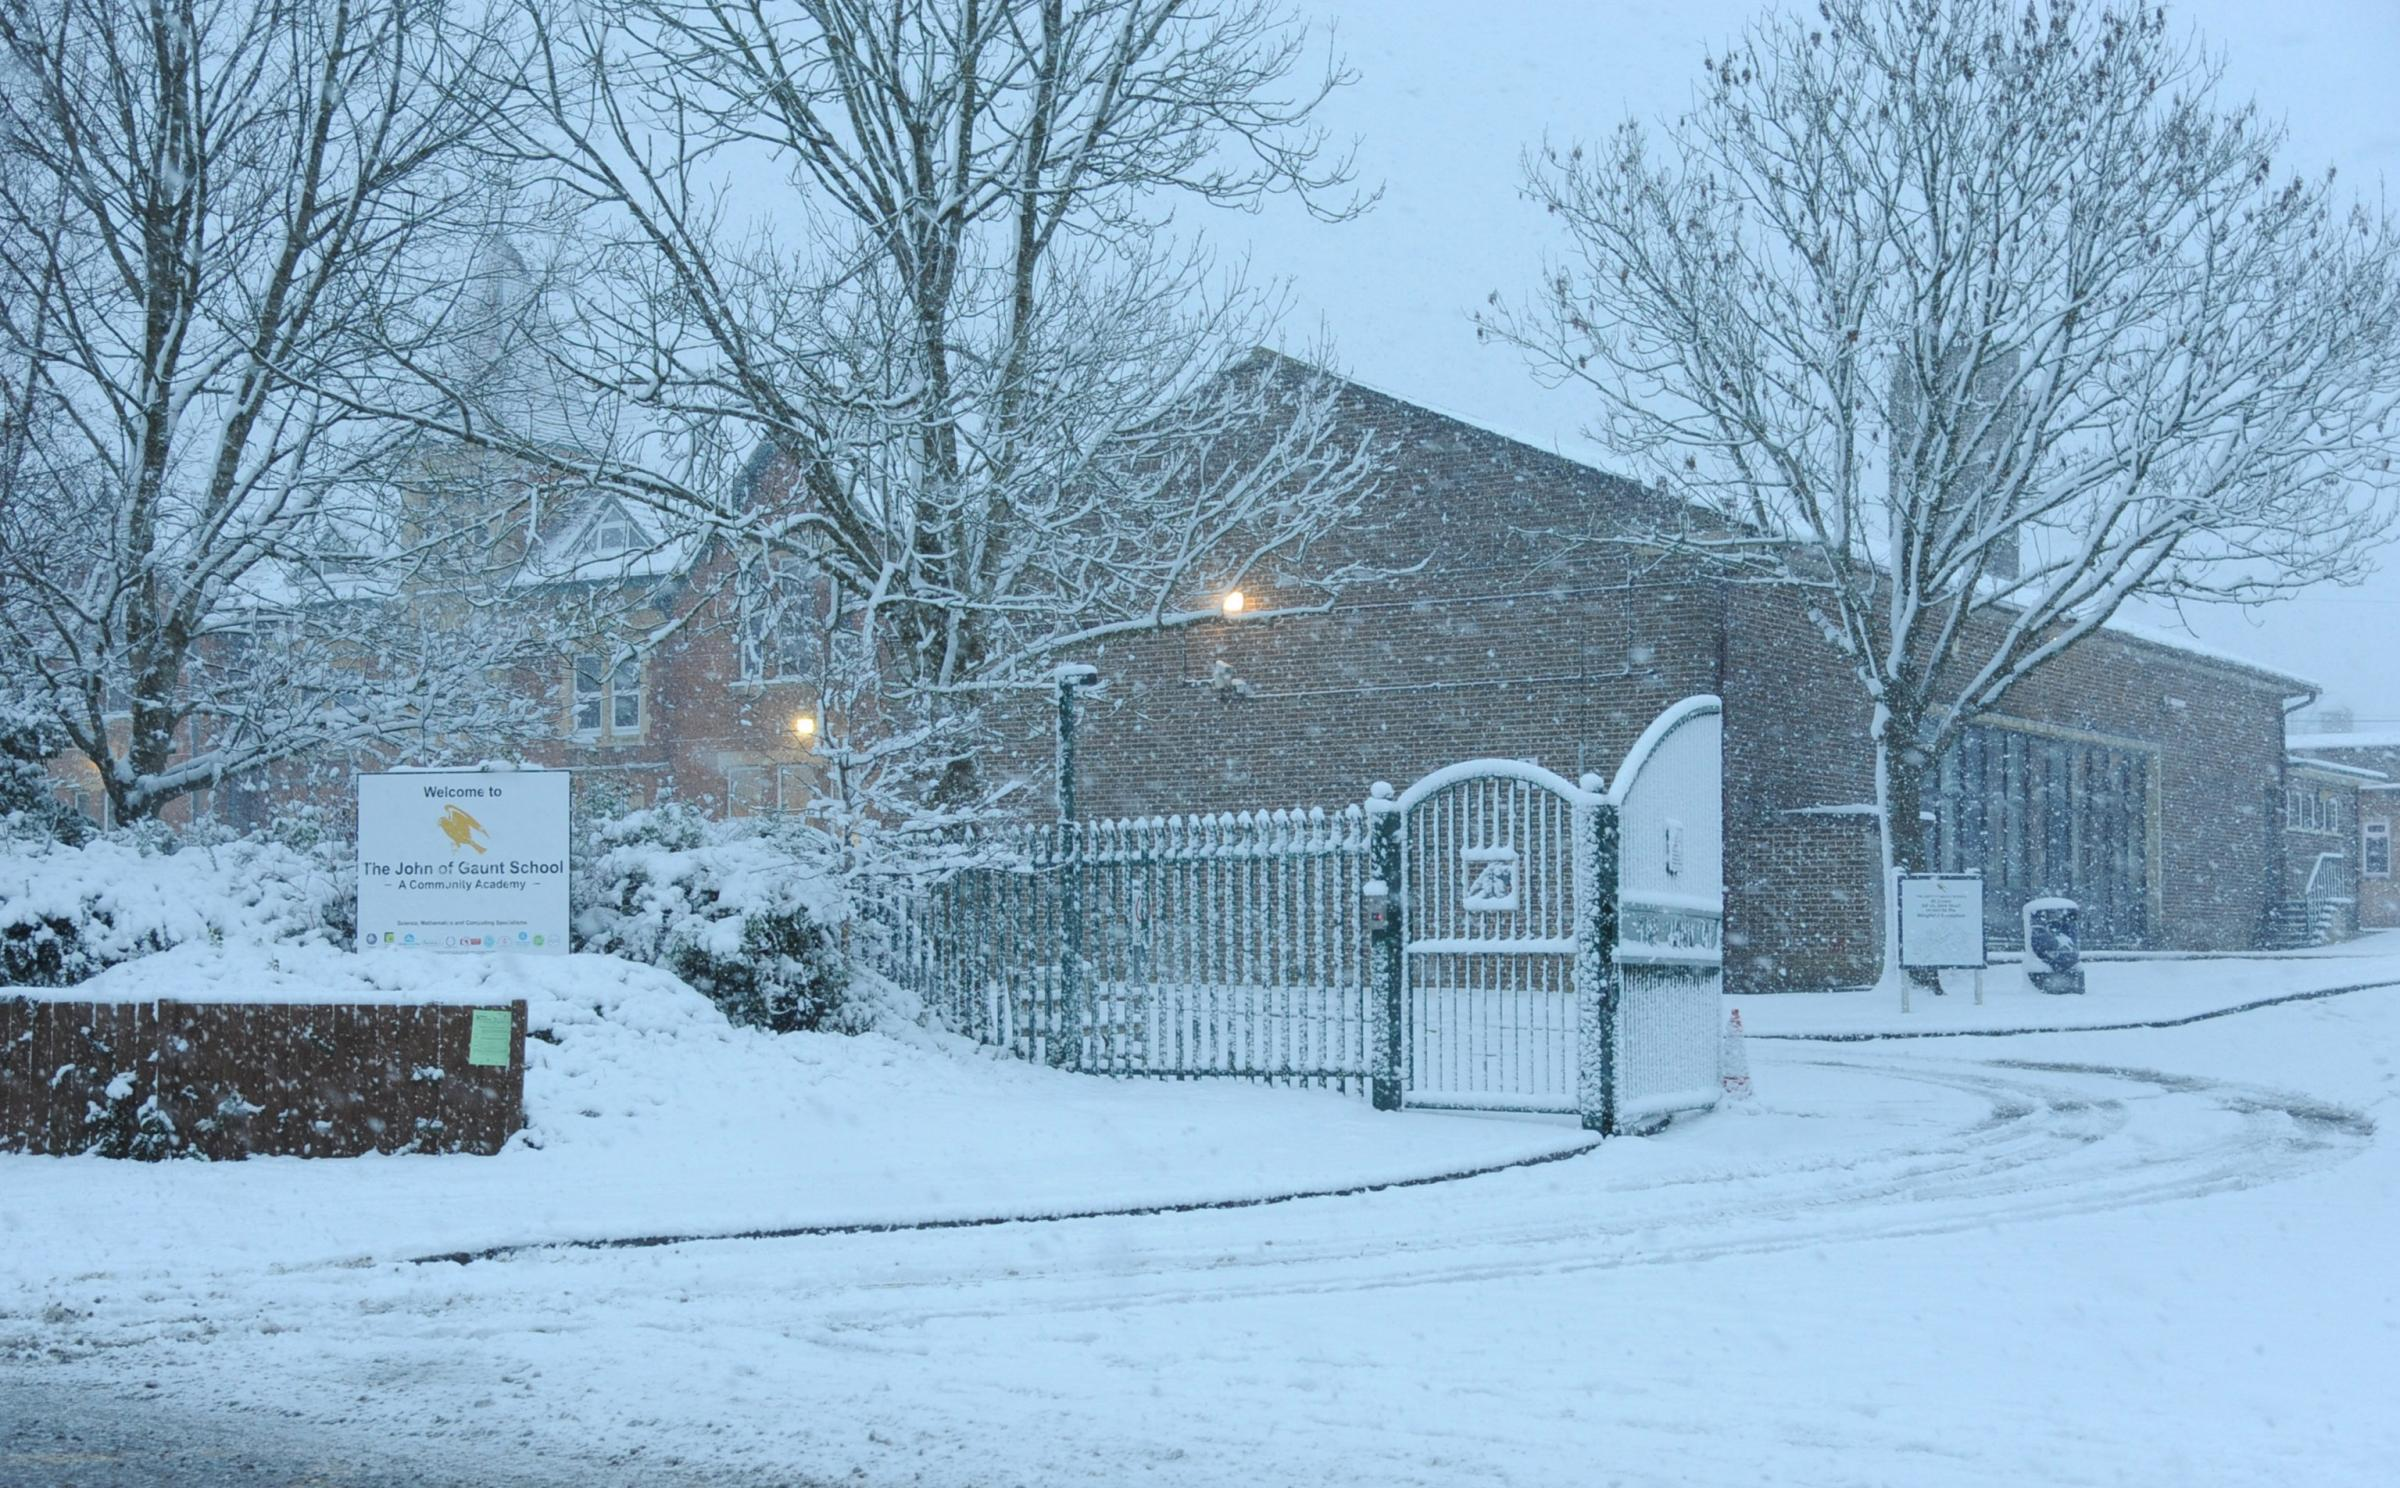 Schools across Wiltshire are closed today